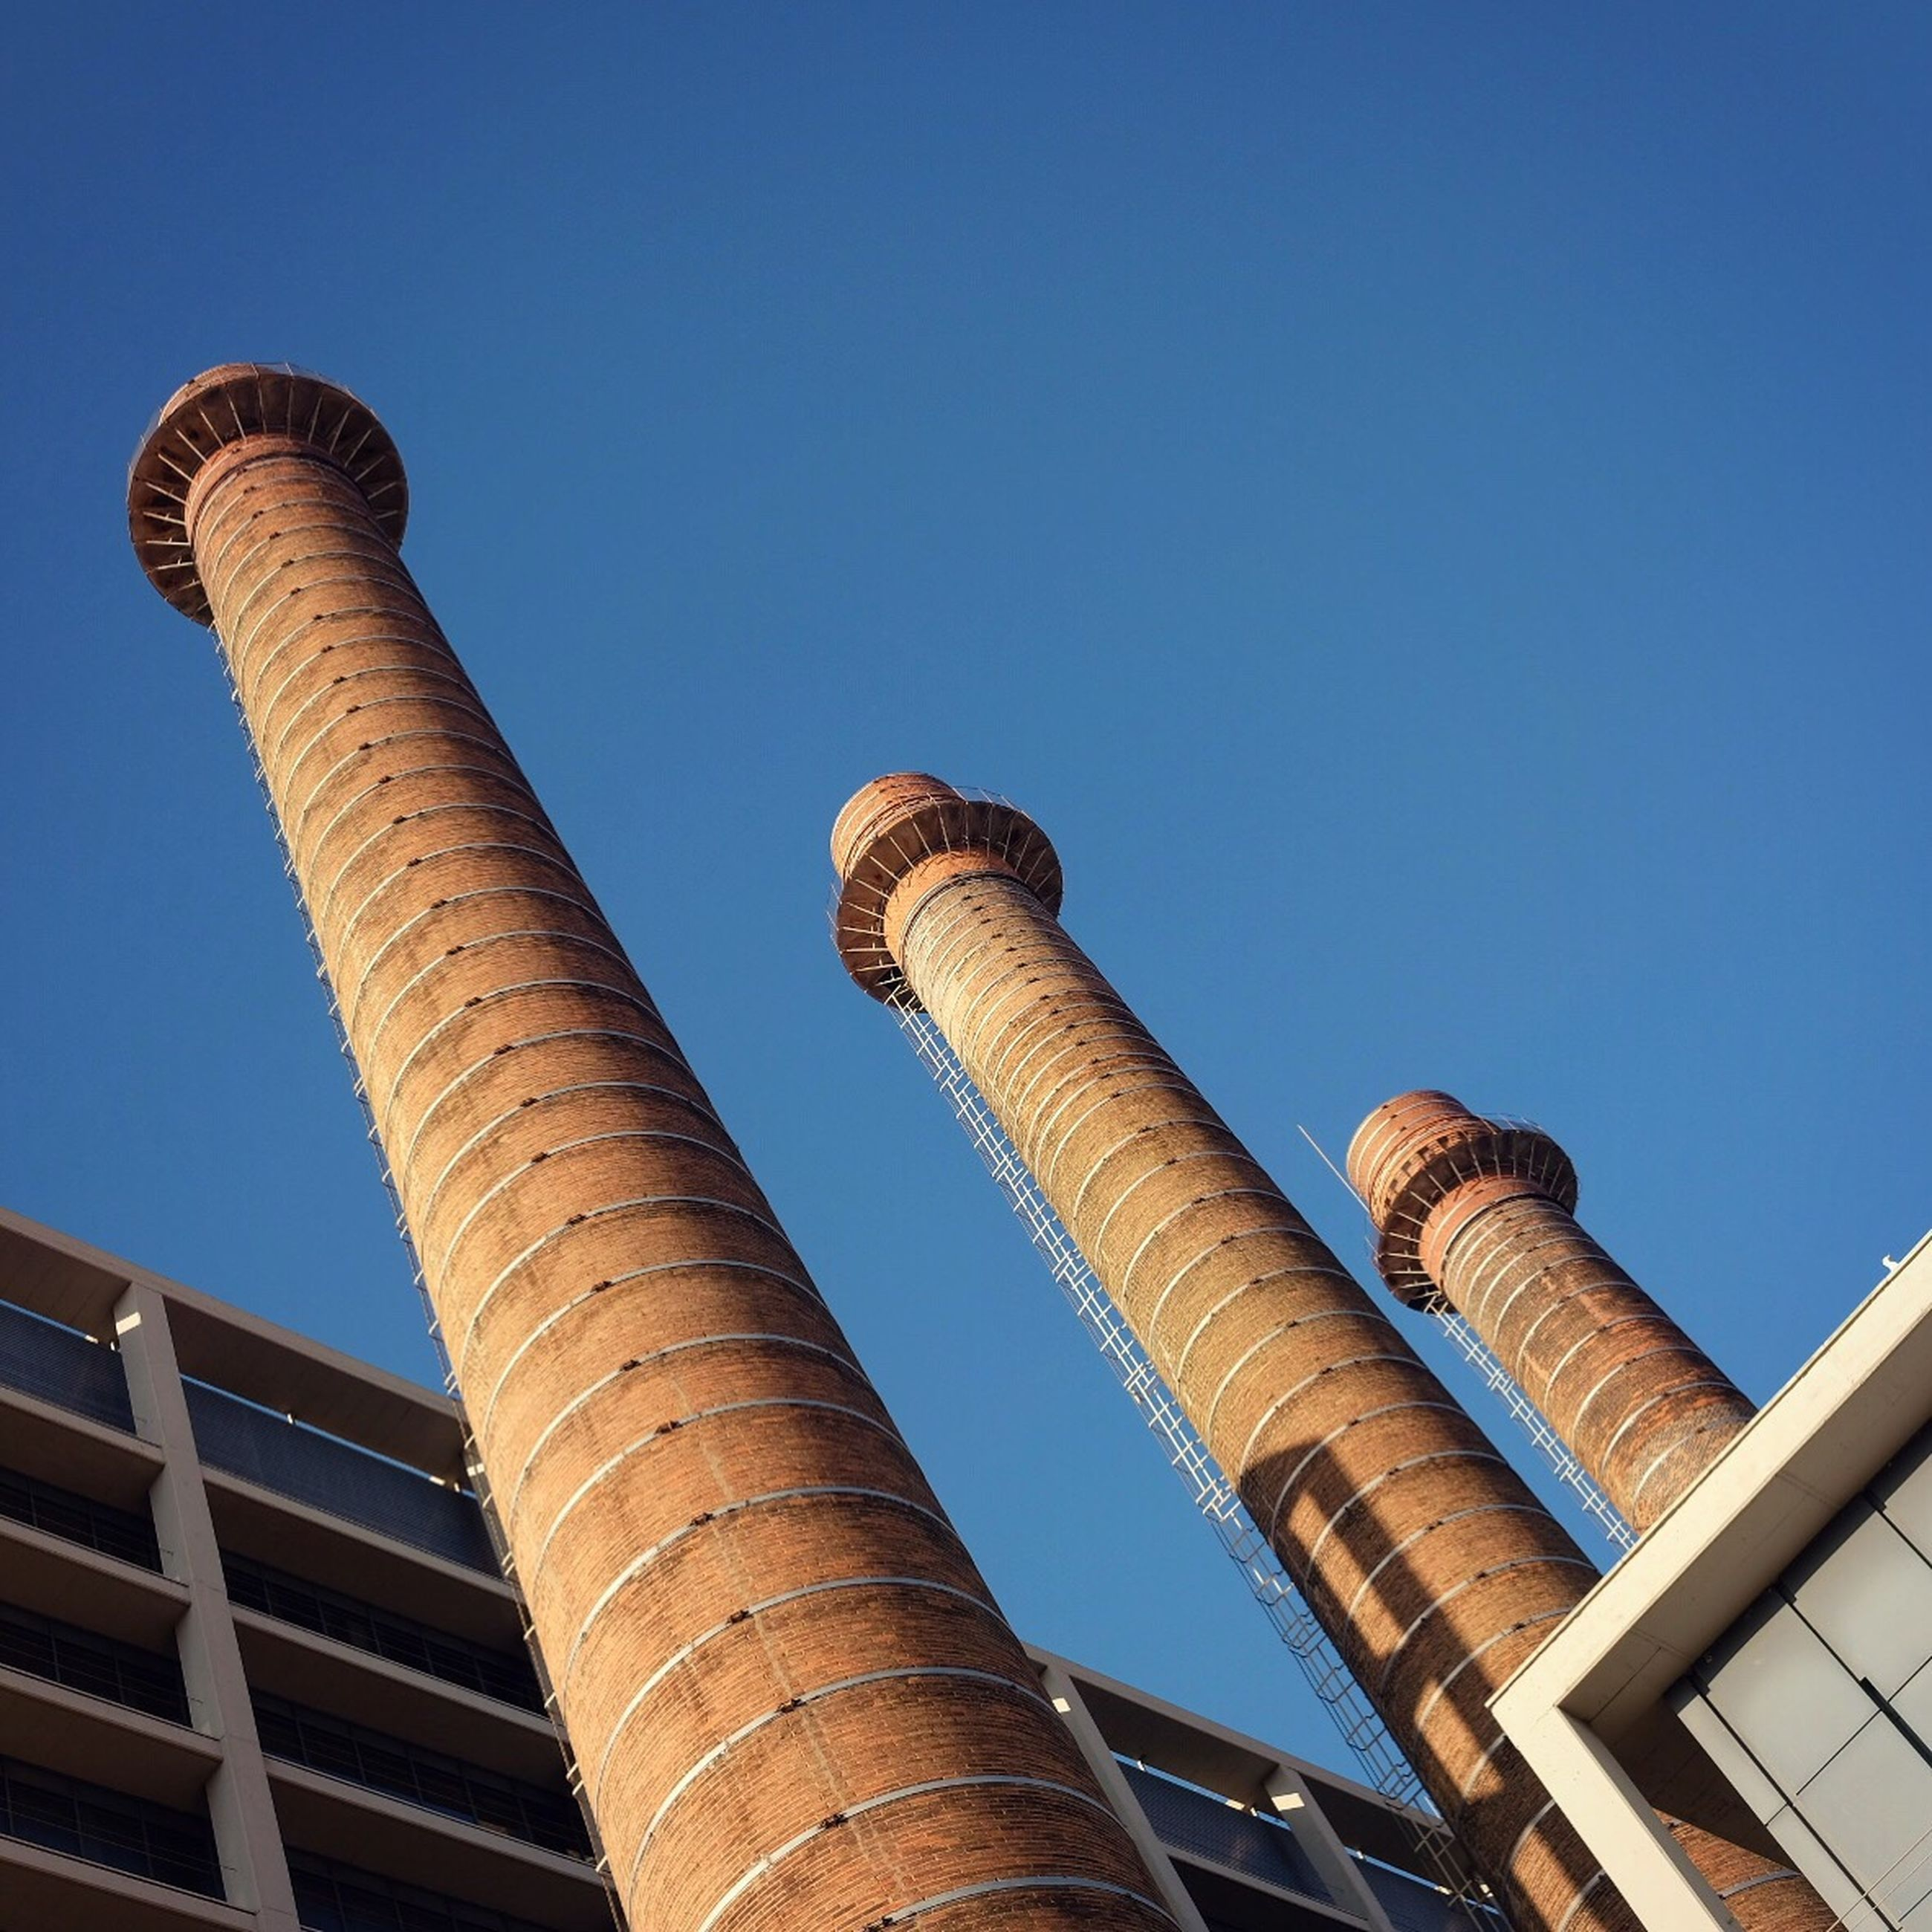 low angle view, clear sky, architecture, building exterior, blue, built structure, tall - high, city, no people, tower, industry, outdoors, sky, factory, smoke stack, day, skyscraper